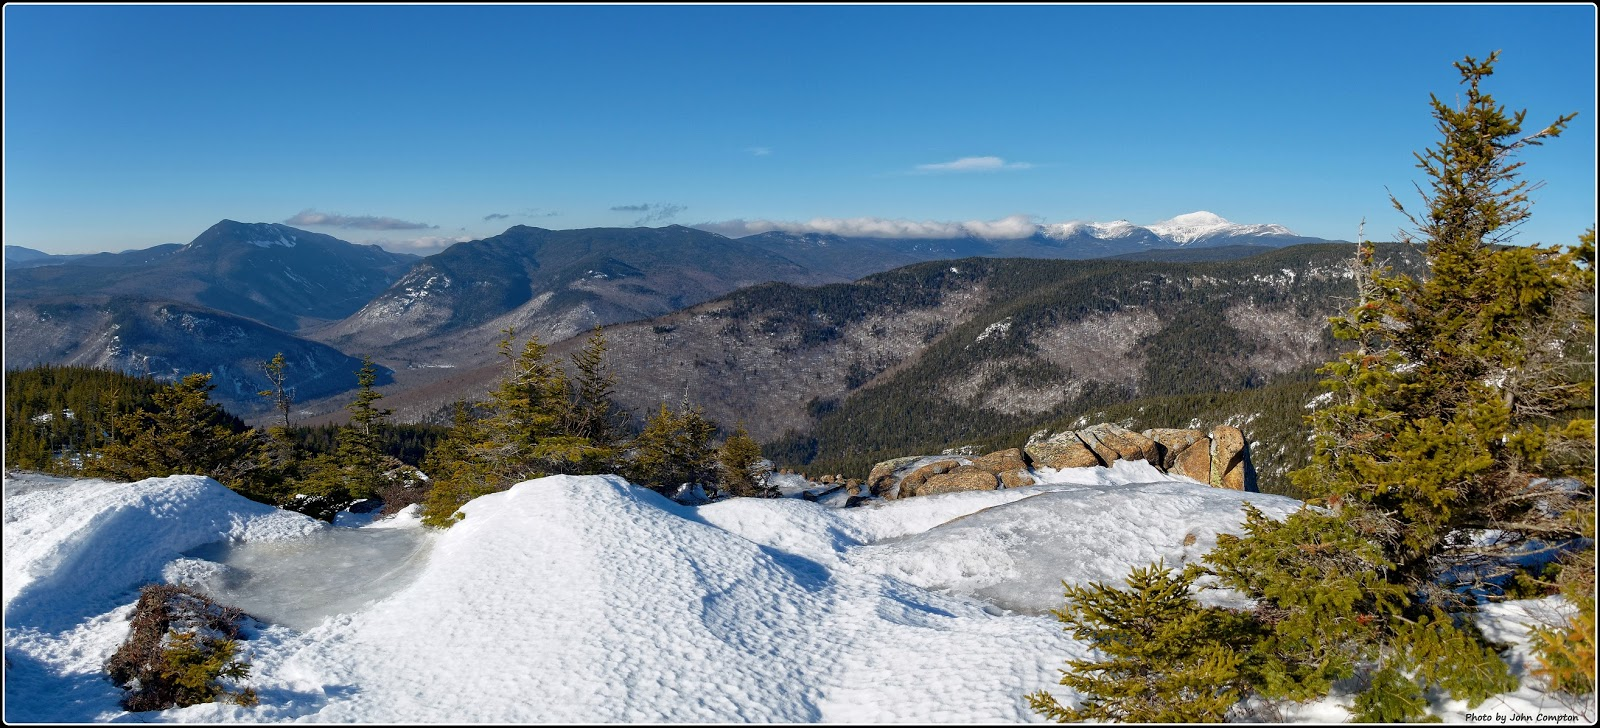 Stairs Mtn Mt Resolution Mt Crawford NH